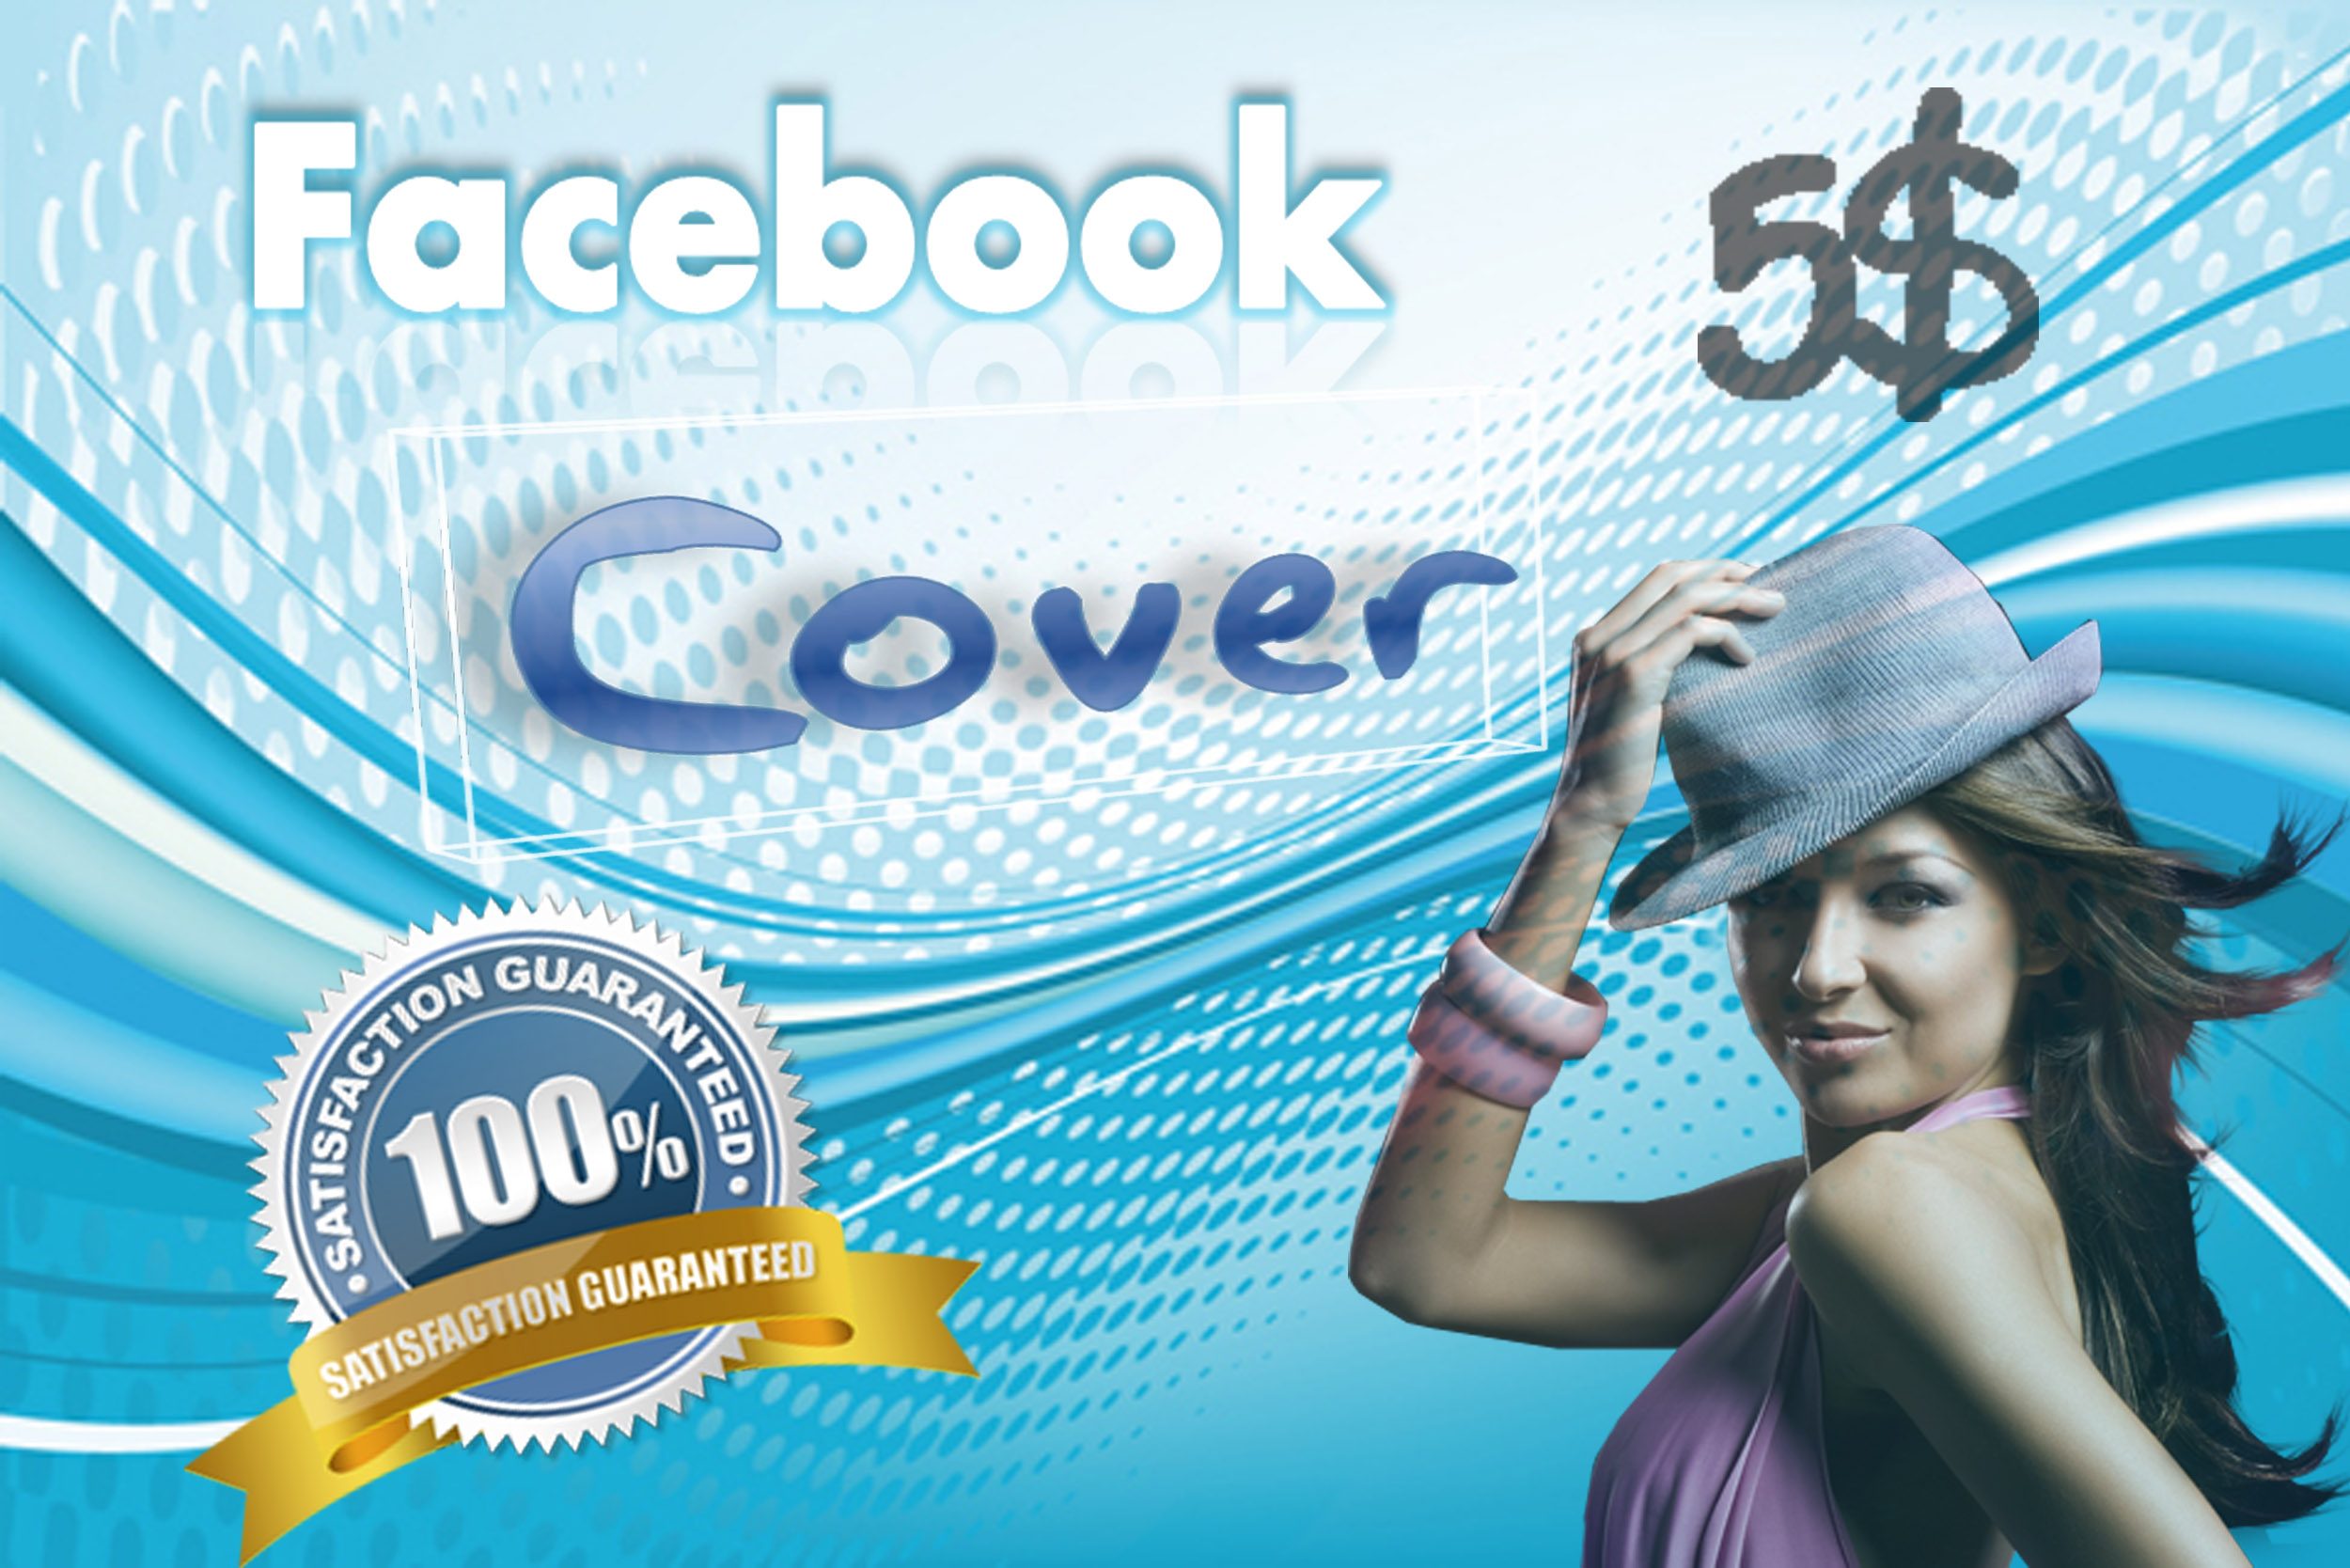 Very attractive Facebook Covers in 12 hrs